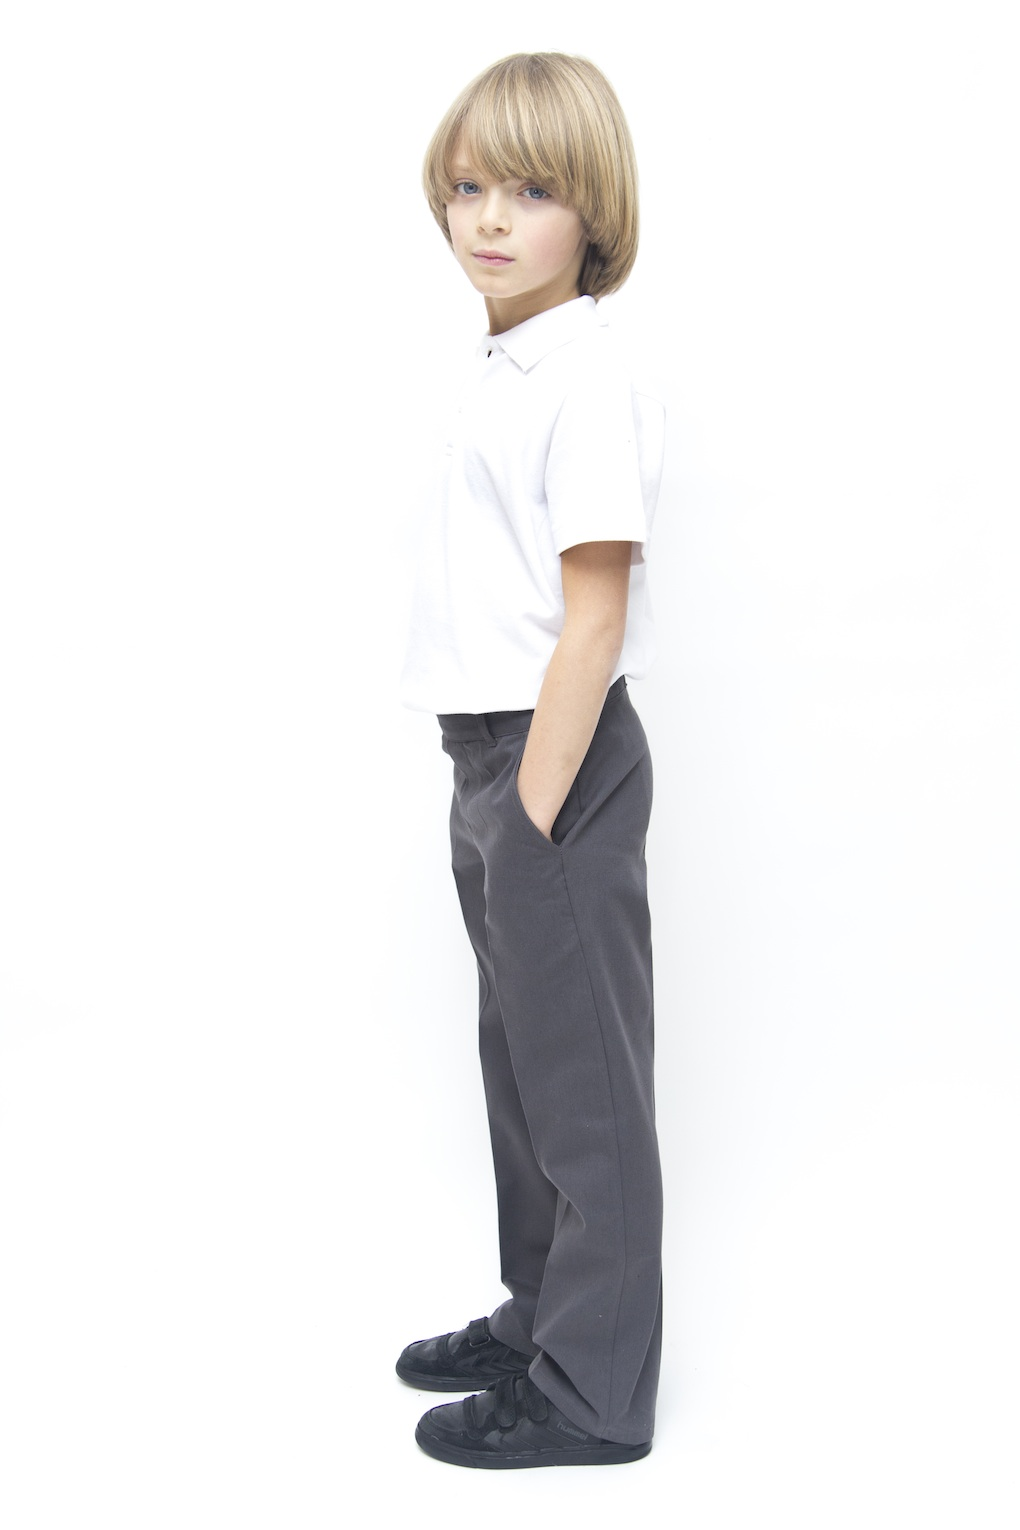 The sale of synthetic to cotton trousers is about according to the central buyer for schoolwear at John Lewis, which is the official supplier of school uniforms to 1, schools in the UK.